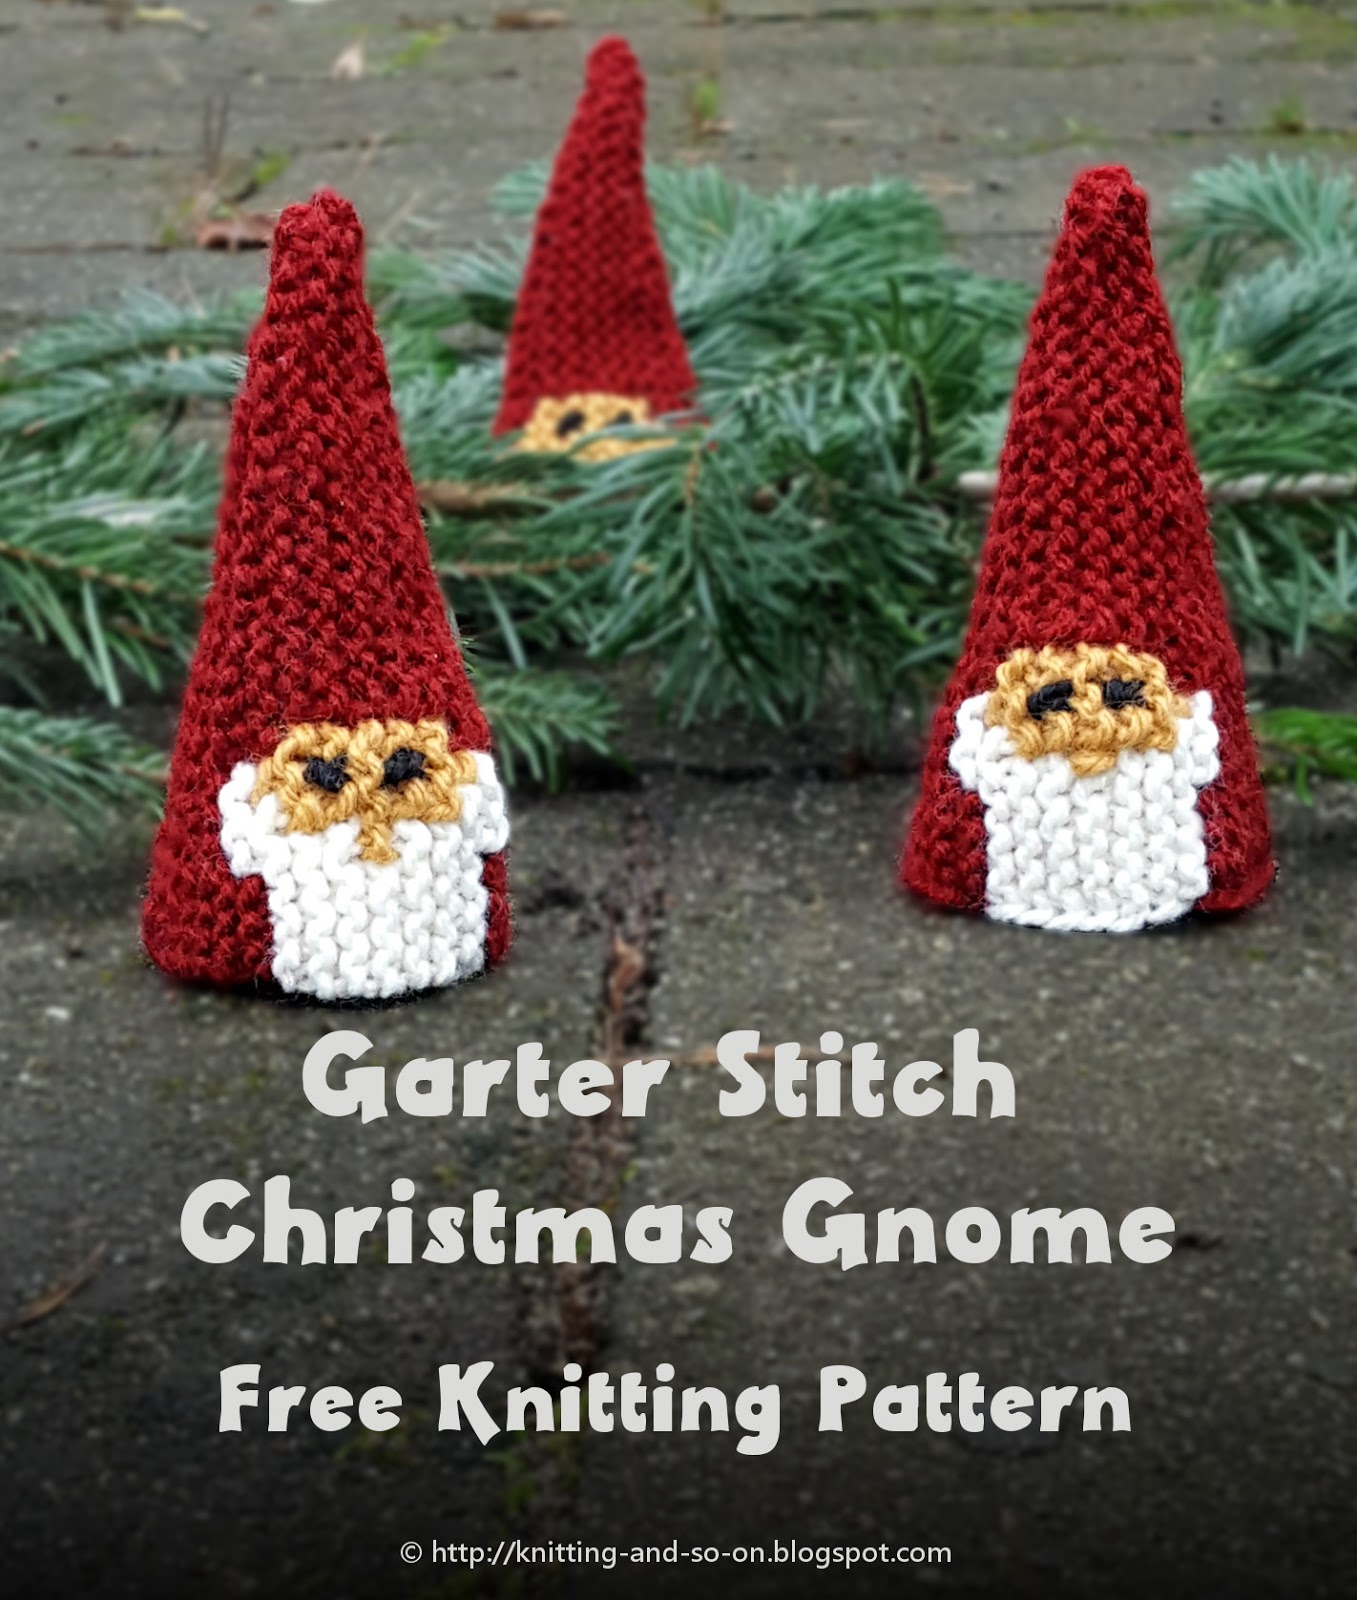 Knitting and so on: Garter Stitch Christmas Gnome